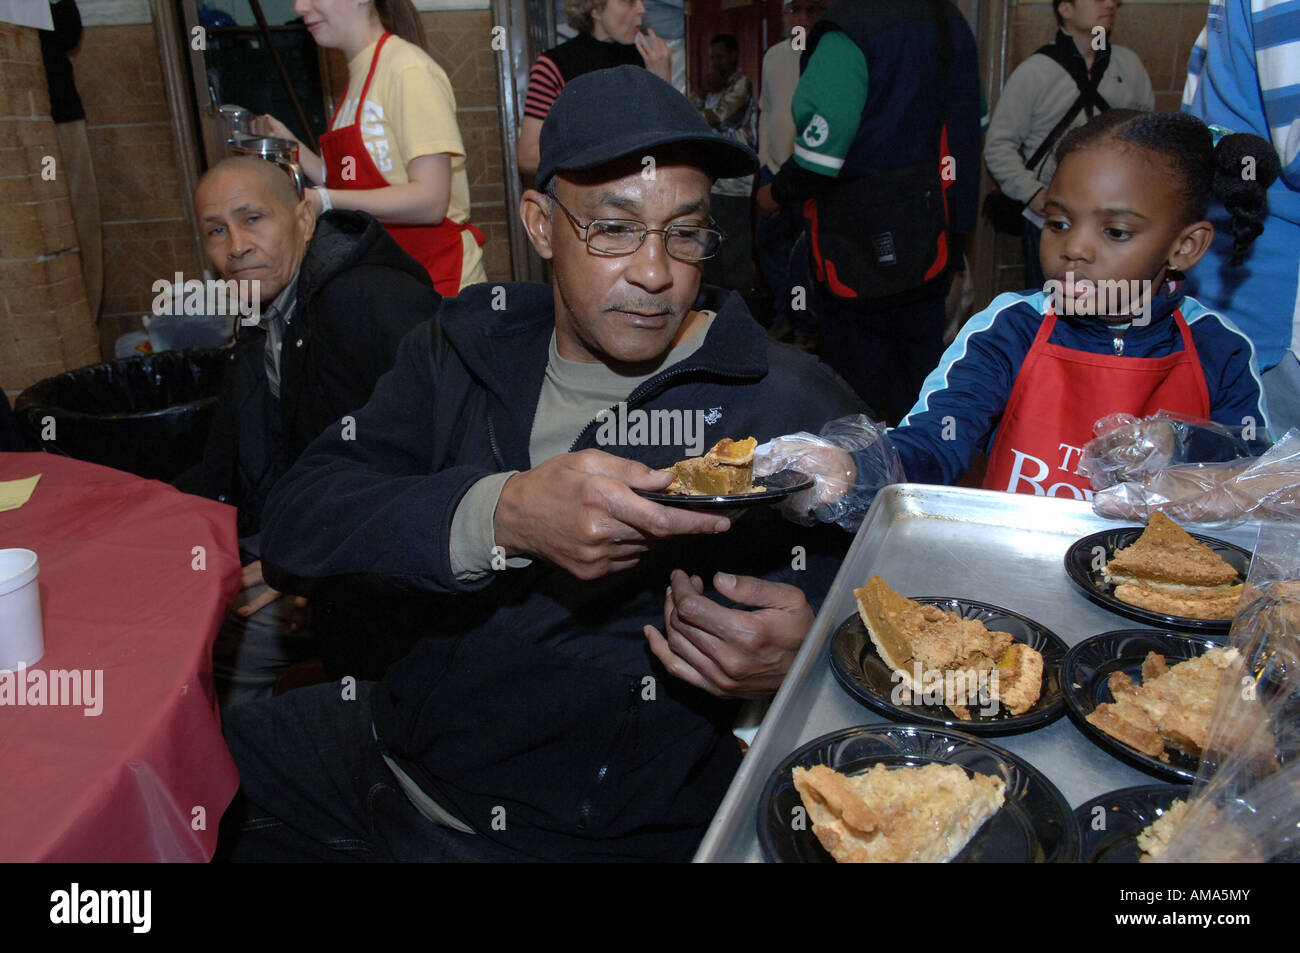 Soup Kitchen Homeless Volunteer Stockfotos & Soup Kitchen Homeless ...